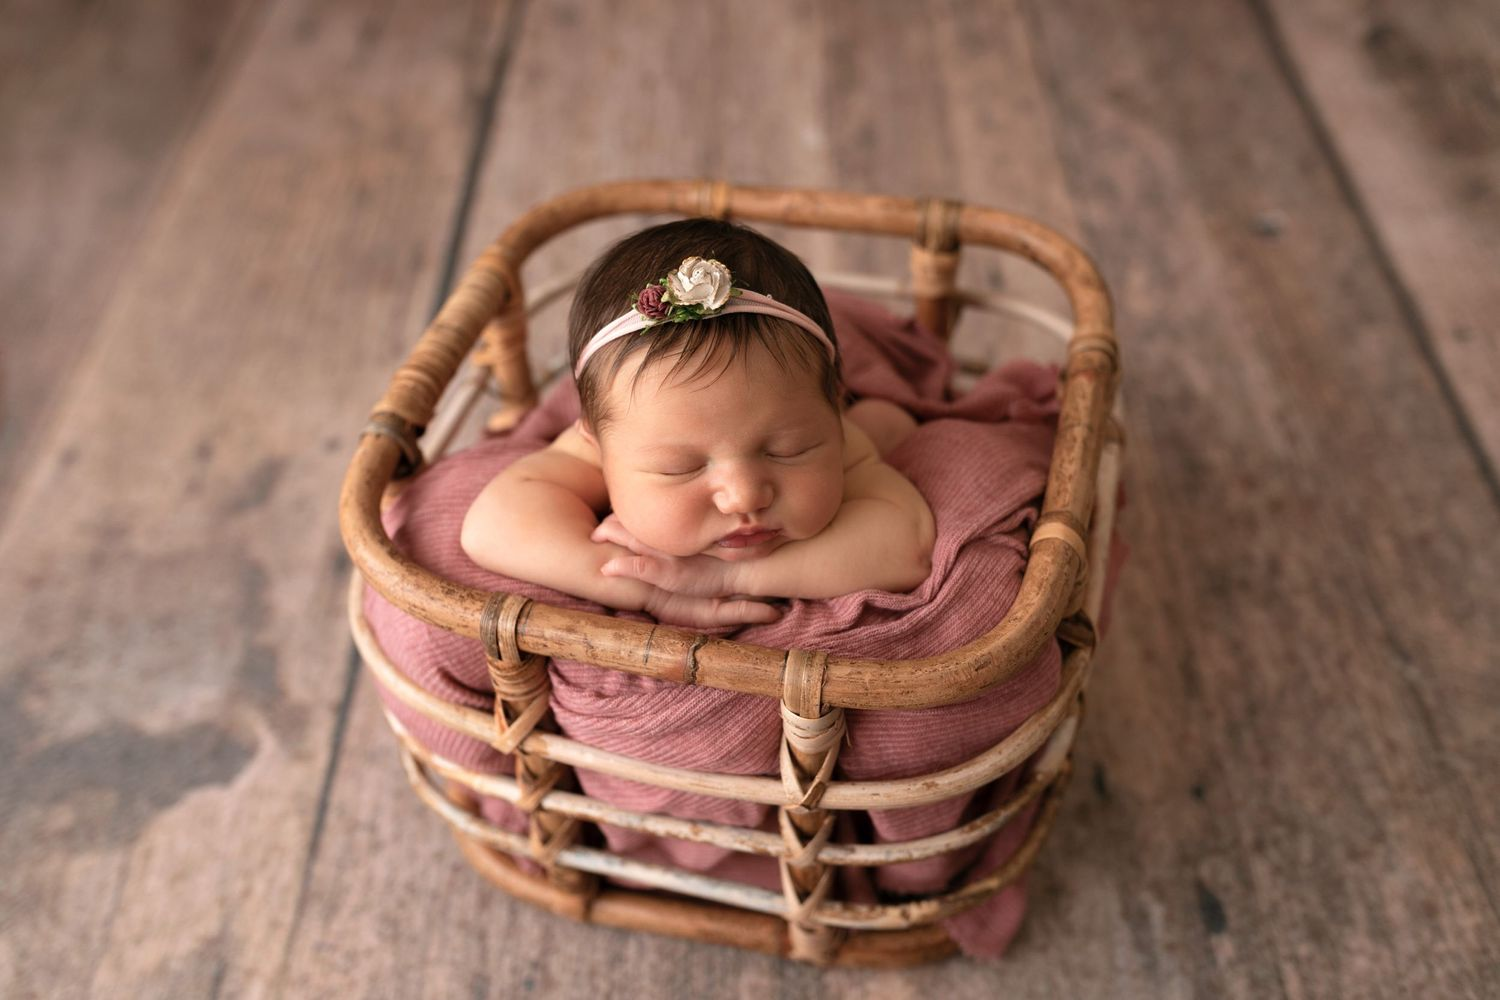 louisiana newborn photographer - angel denise photography